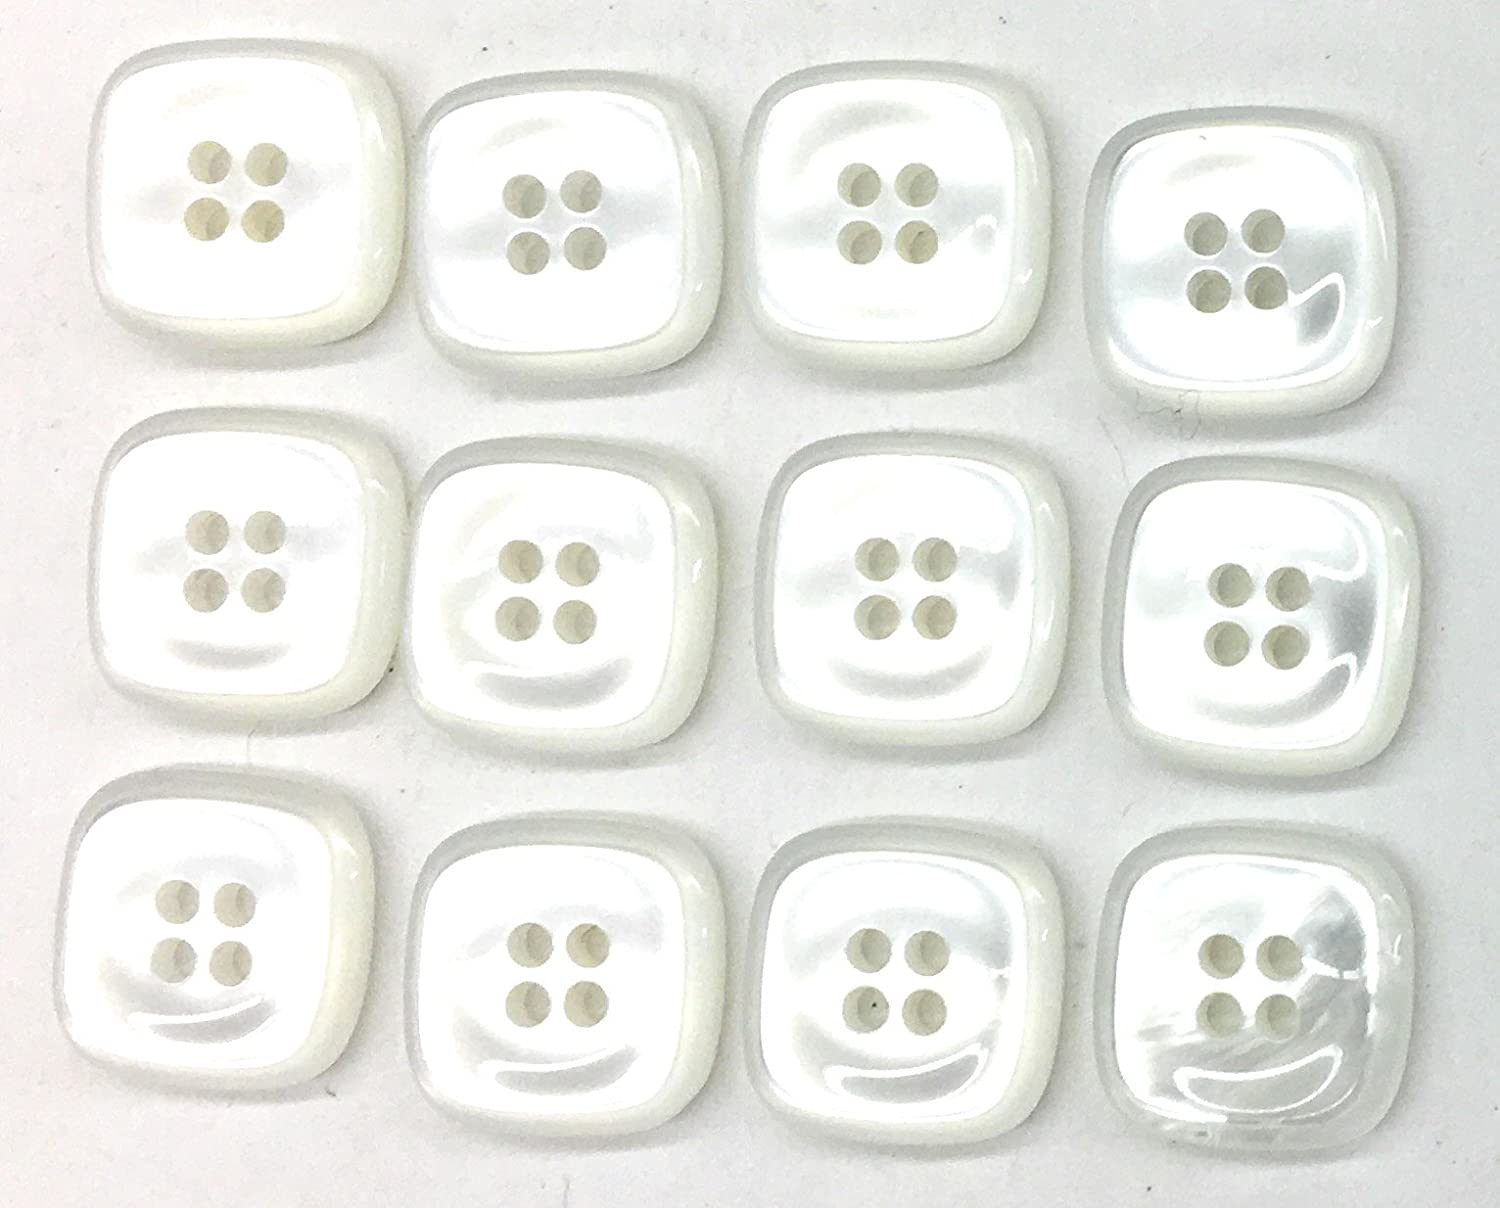 x 4 buttons 13mm White 2 Hole Button